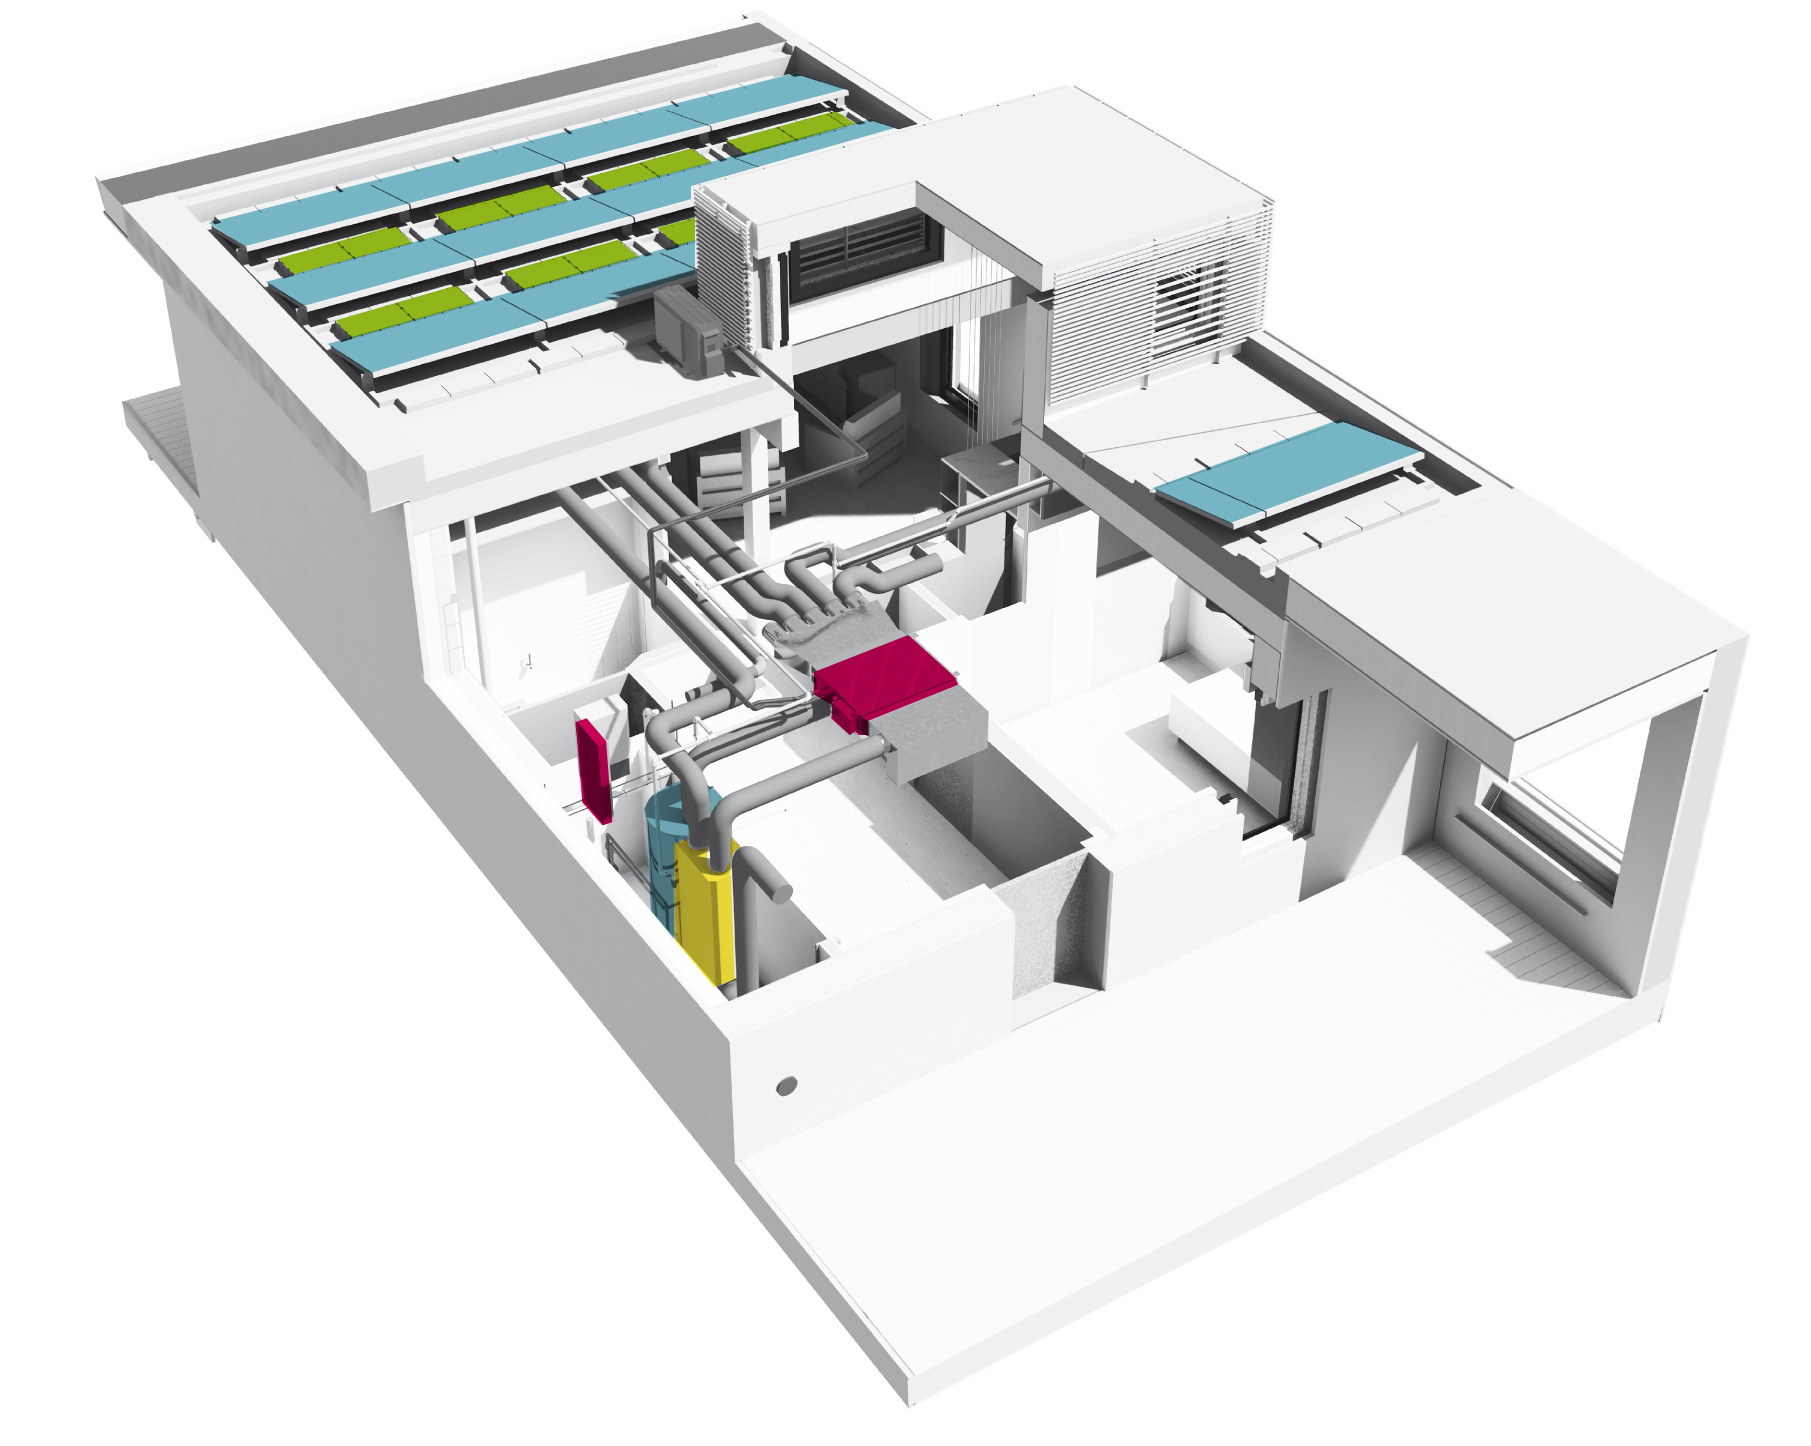 A rendering of the Systems Inside the Empowerhouse